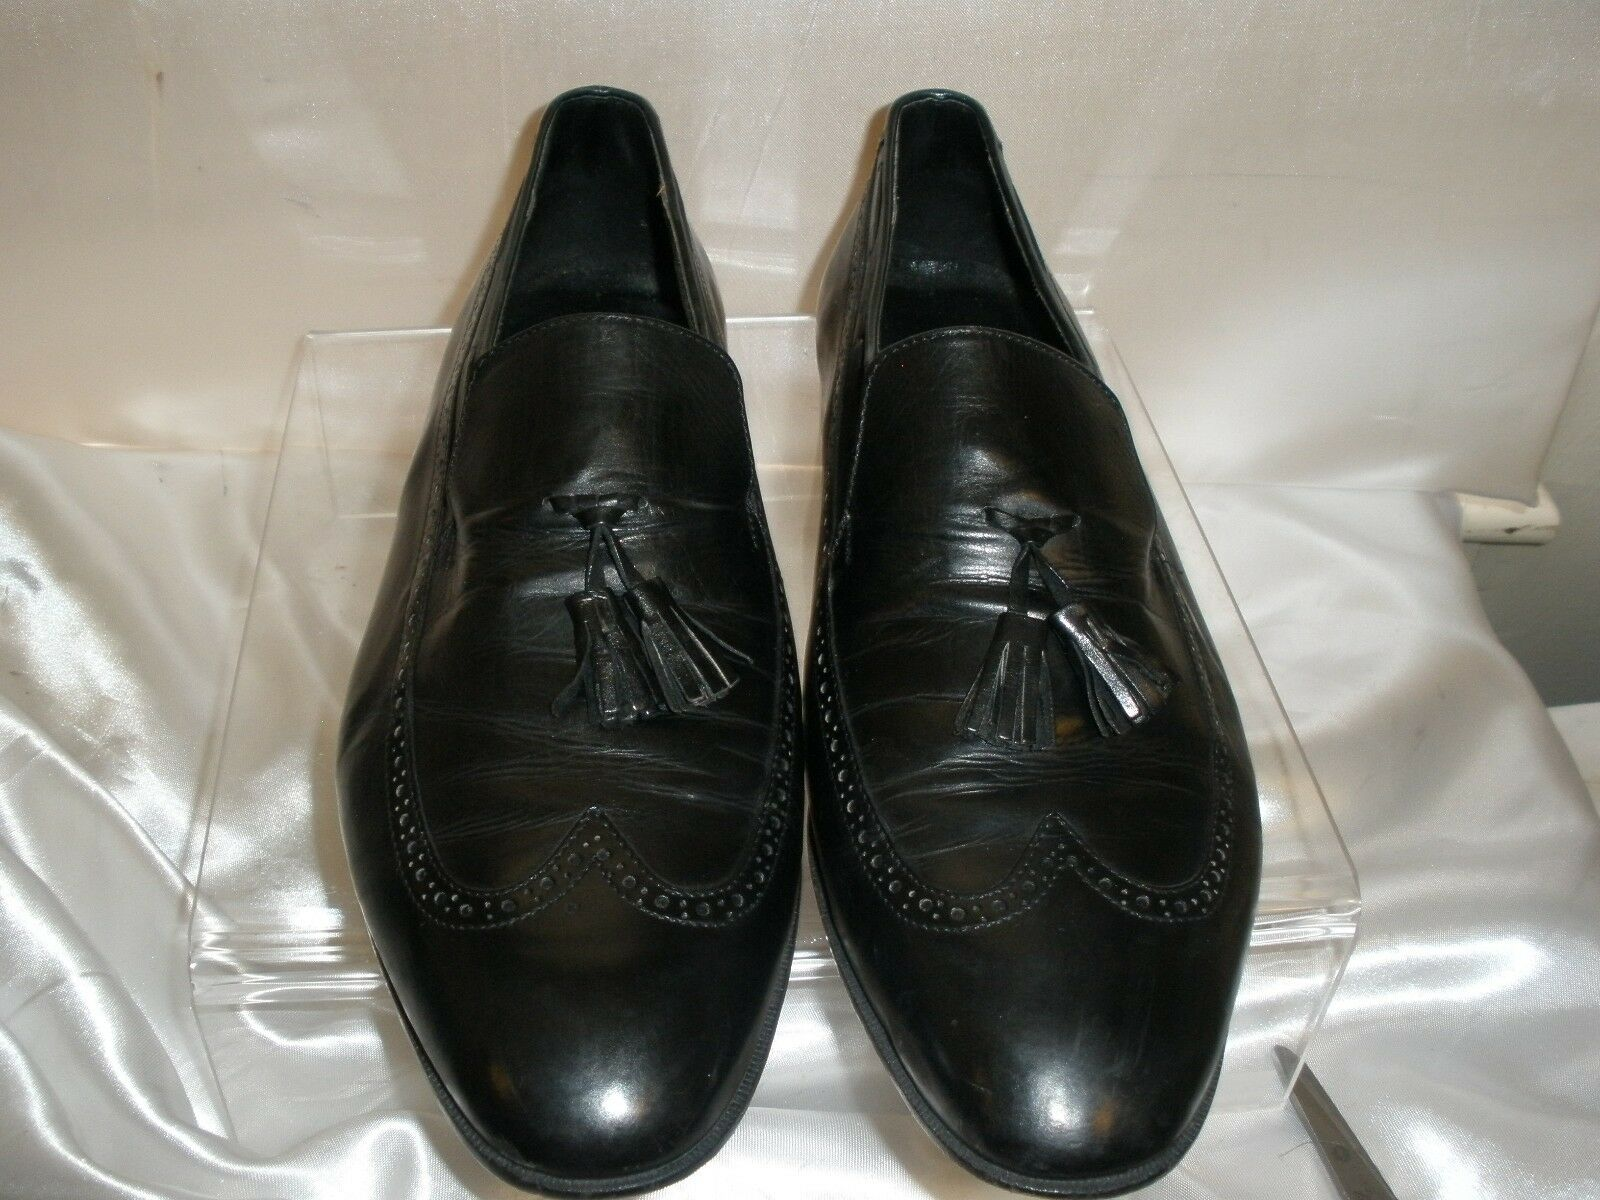 Vintage Leather PHILLIP DE JARMO Black Leather Vintage Wingtip Tassel Loafer Men's 10M EUC~ITALY 4027f0